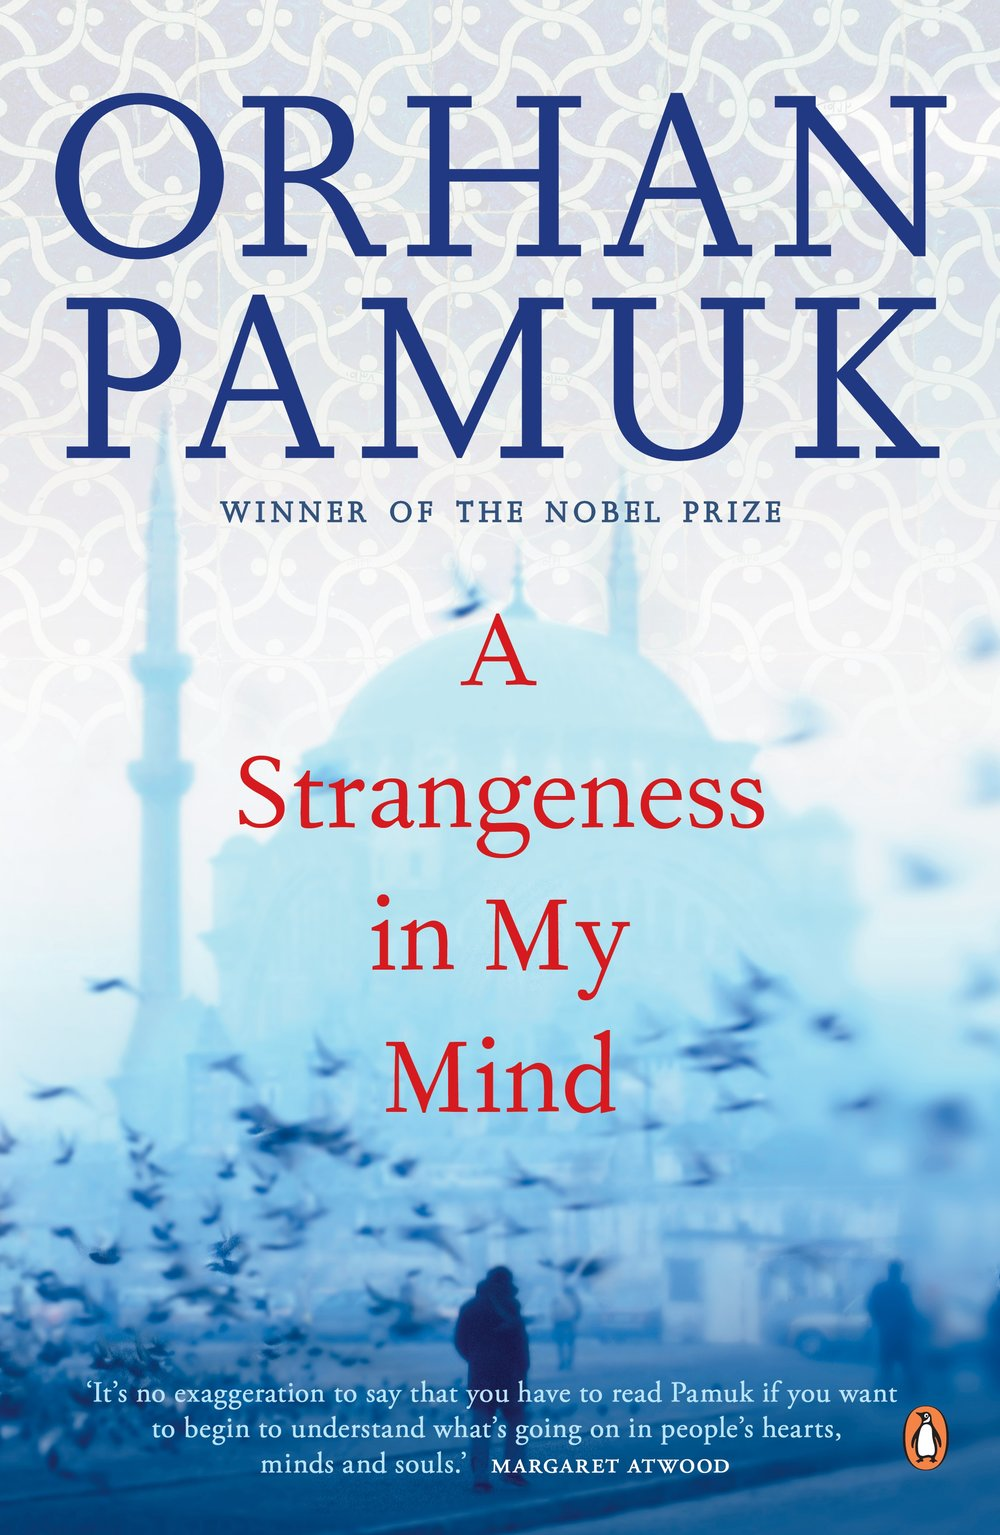 a strangeness in my mind by orhan pamuk - From the Nobel prize winner and bestselling author of My Name is Red and The Museum of Innocence, a soaring, panoramic new novel telling the unforgettable tale of an Istanbul street vendor and the love of his life.Over four decades, Mevlut observes many different kinds of people thronging the streets, he watches most of the city get demolished and re-built, and he witnesses all of the transformative moments, political clashes, and military coups that shape the country.